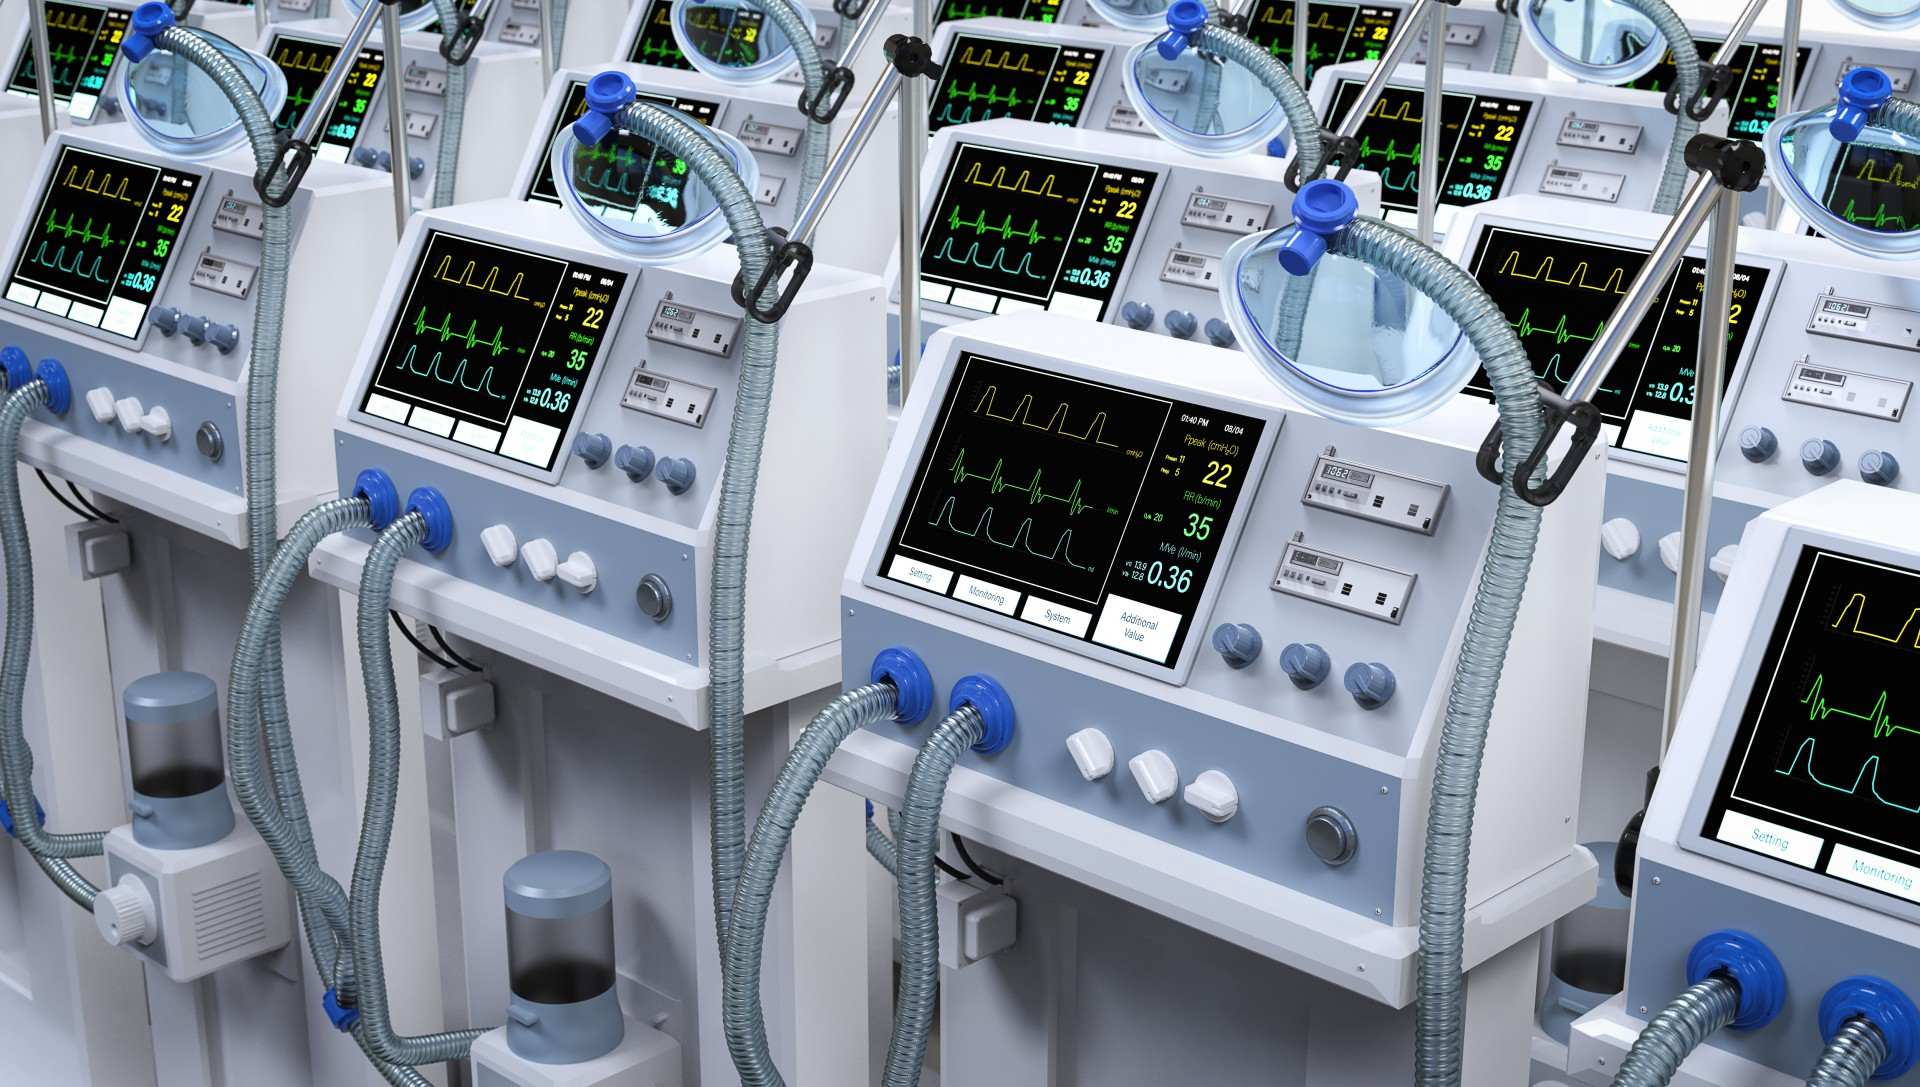 Mechanical ventilation saves lives, but can cause lung injury. Ohio State scientists are working on boosting a natural cellular process in pursuit of a therapy that could lower the chances for lung damage in patients on ventilators.